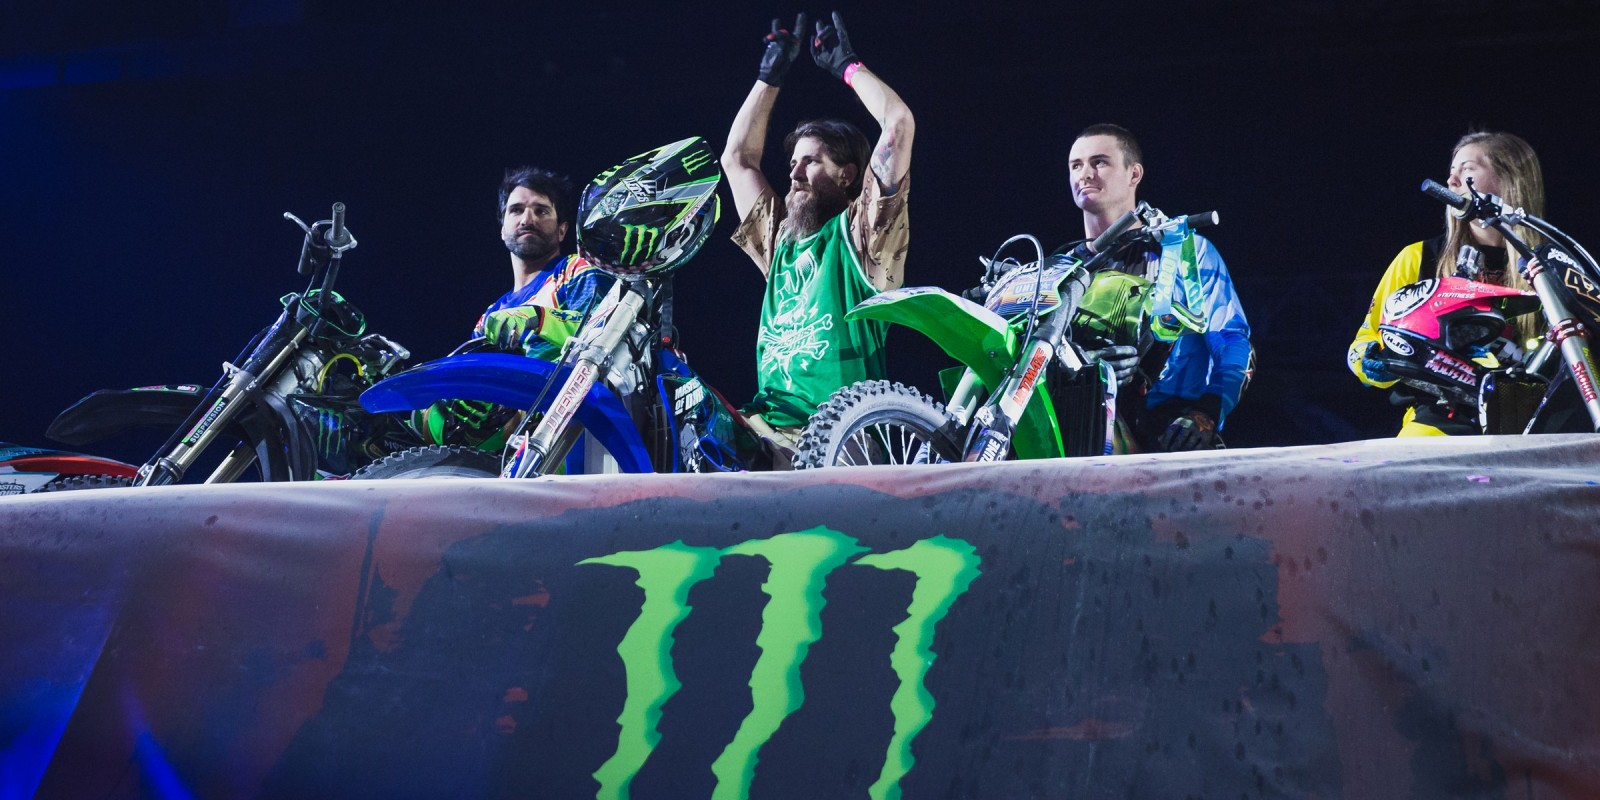 Alastair Sayer and Edgar Torronteras at the Masters of Dirt in Vienna.